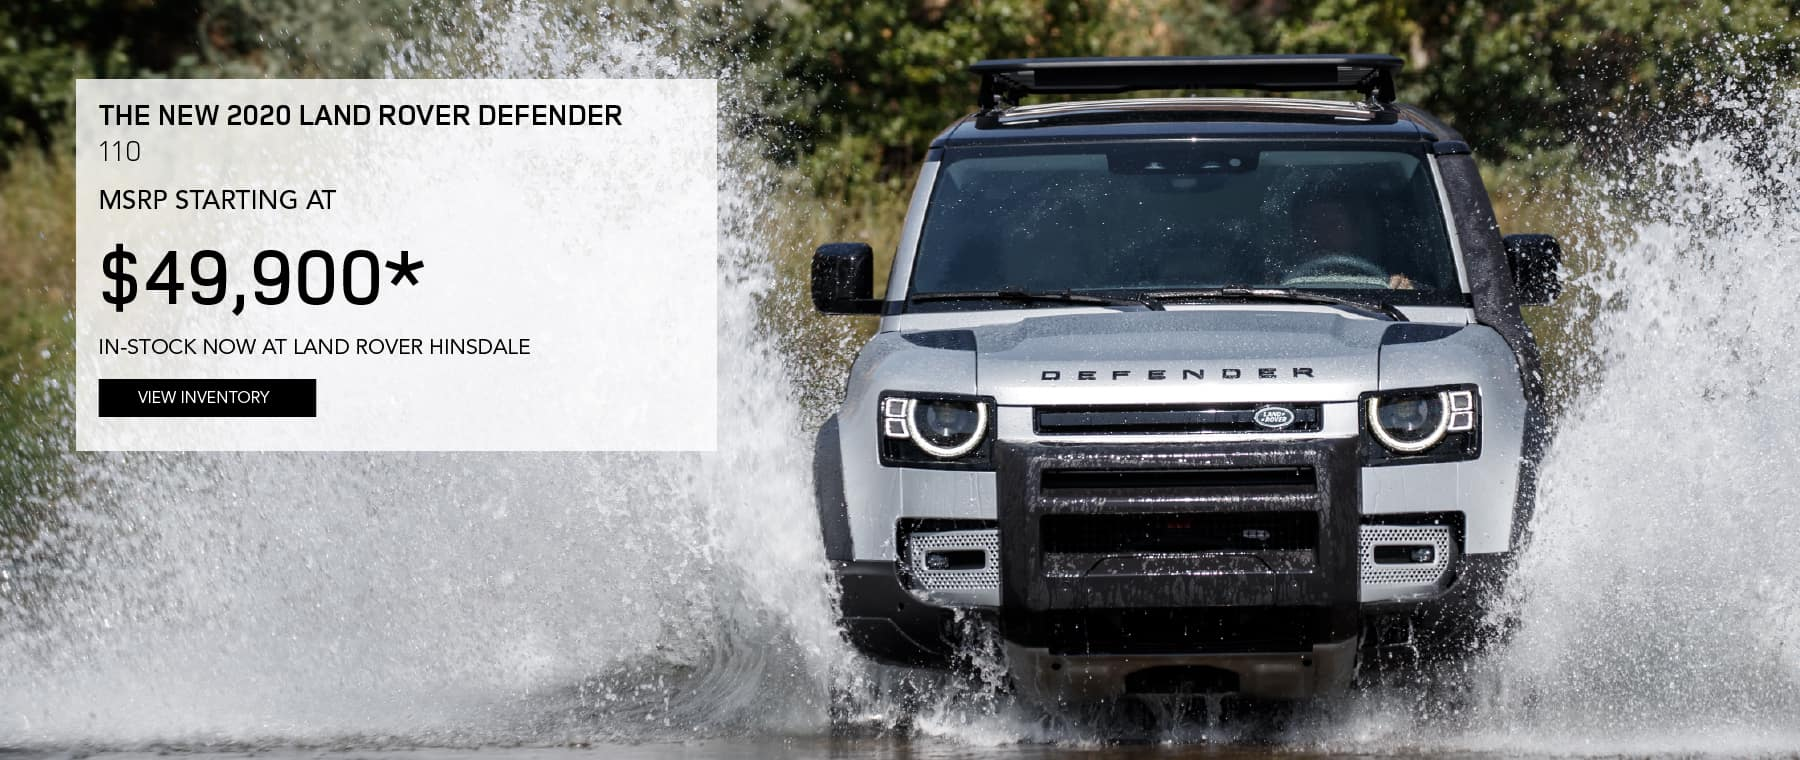 THE NEW 2020 LAND ROVER DEFENDER 110. MSRP STARTING AT $49,900. IN-STOCK NOW AT LAND ROVER HINSDALE. VIEW INVENTORY. SILVER LAND ROVER DEFENDER 110 DRIVING THROUGH POND AND SPLASHING WATER.